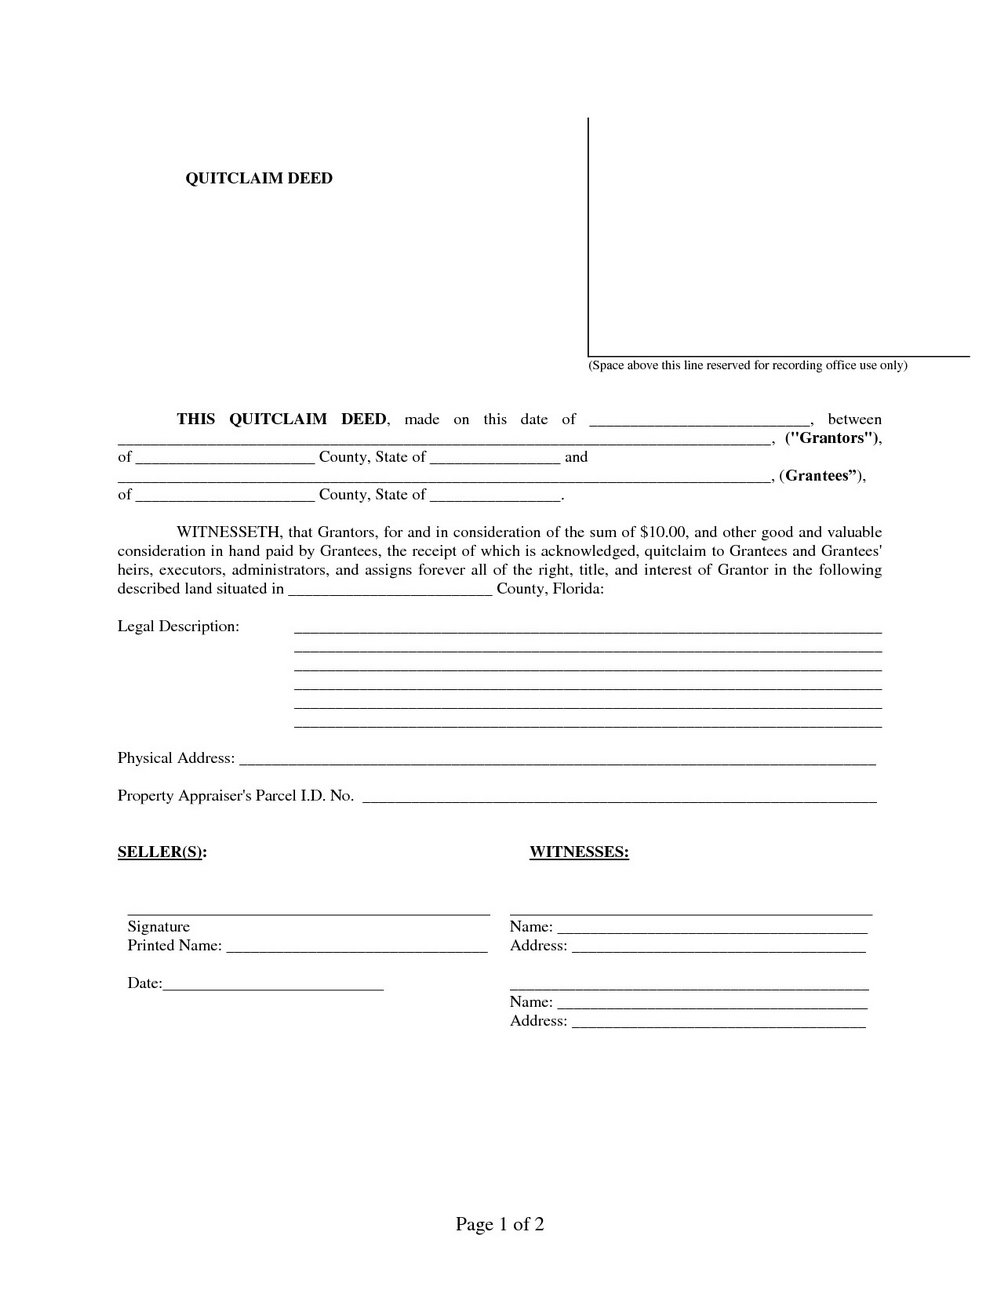 photo relating to Free Printable Quit Claim Deed known as End Declare Deed Style Florida - Varieties #4327 Resume Illustrations